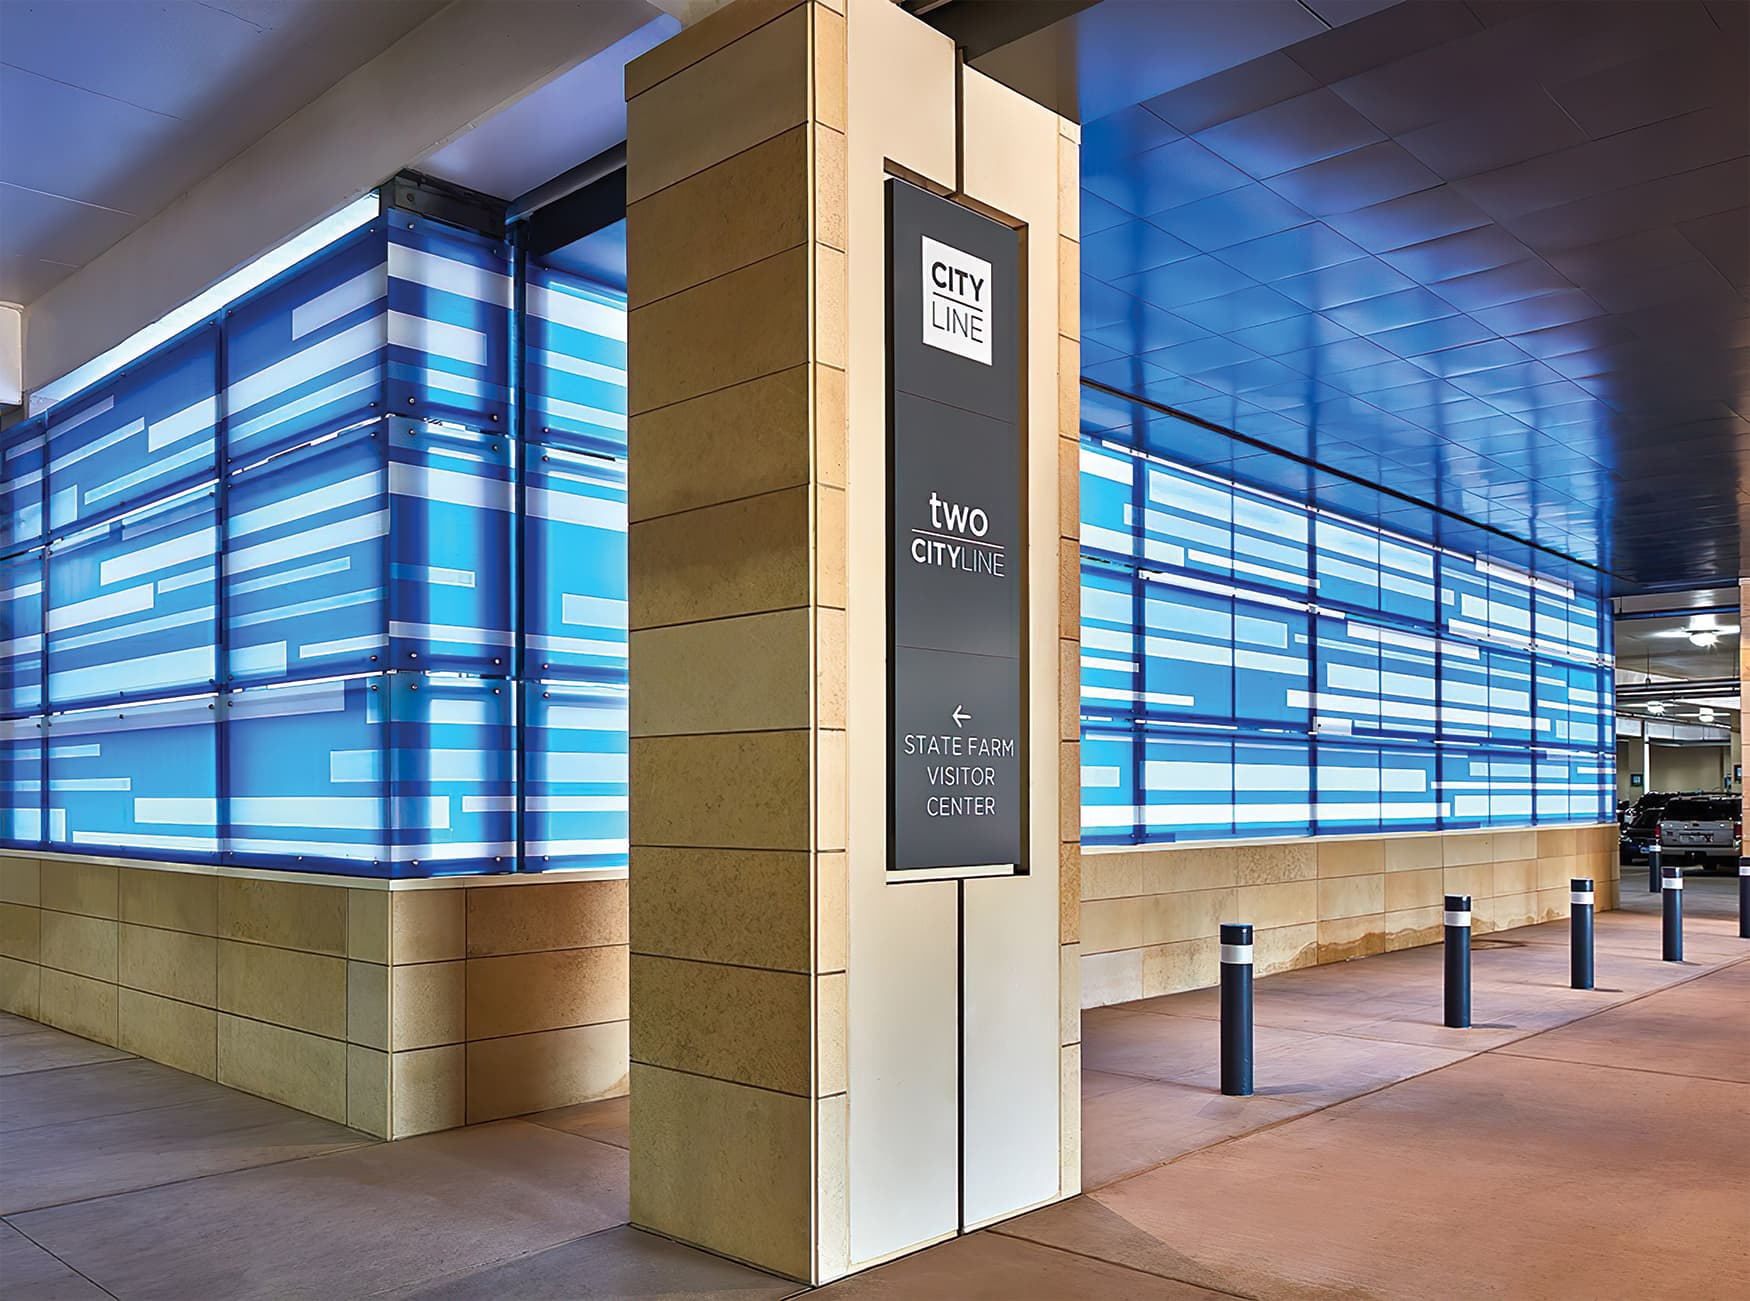 CityLine a mixed-use development in Dallas, Texas. Identity and wayfinding design. Project Identity Signage.